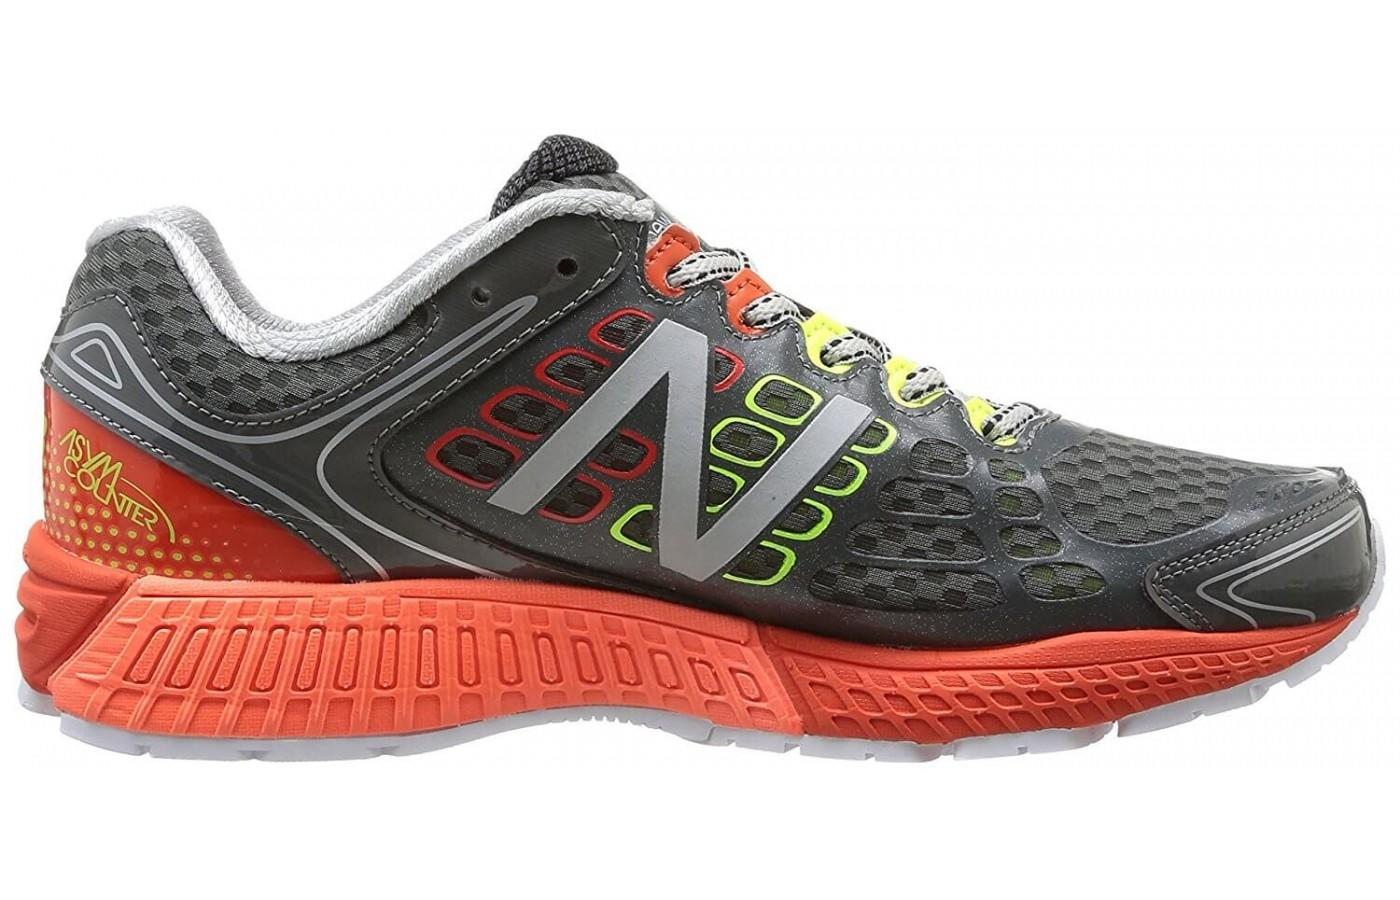 New Balance 1260 v4 cushioned midsole